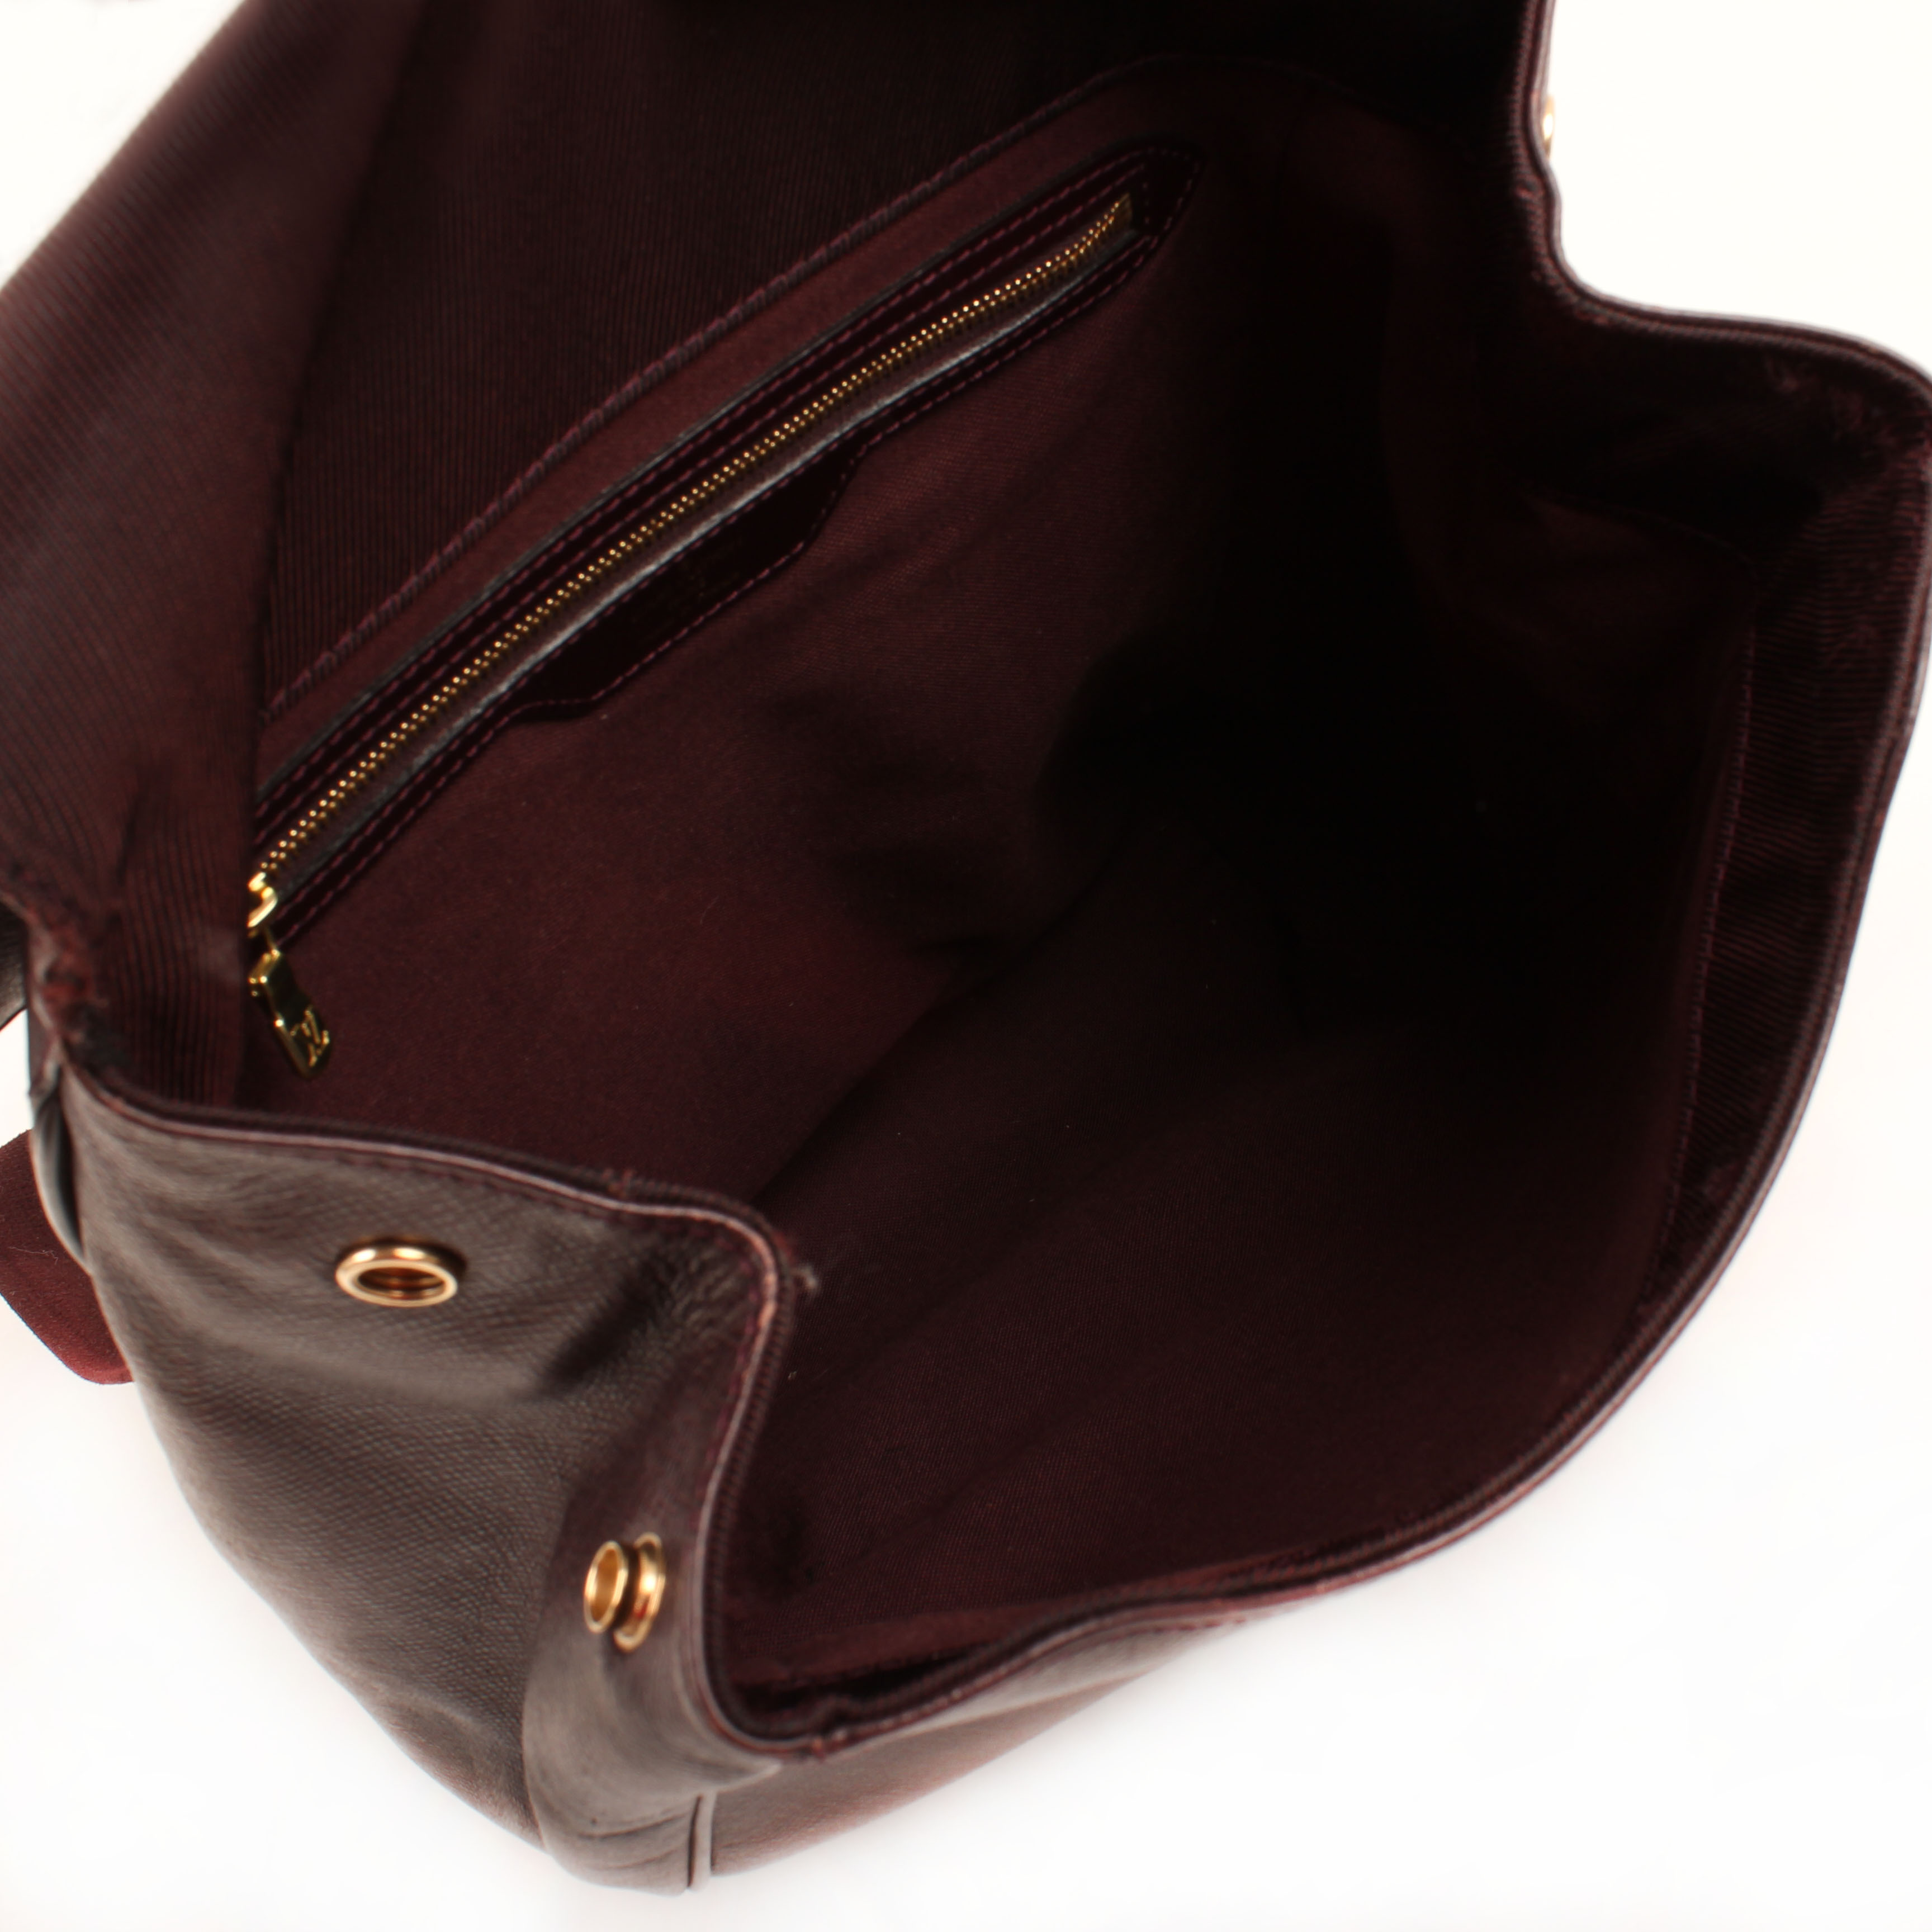 louis vuitton backpack cassiar taiga leather mahogany vintage interior